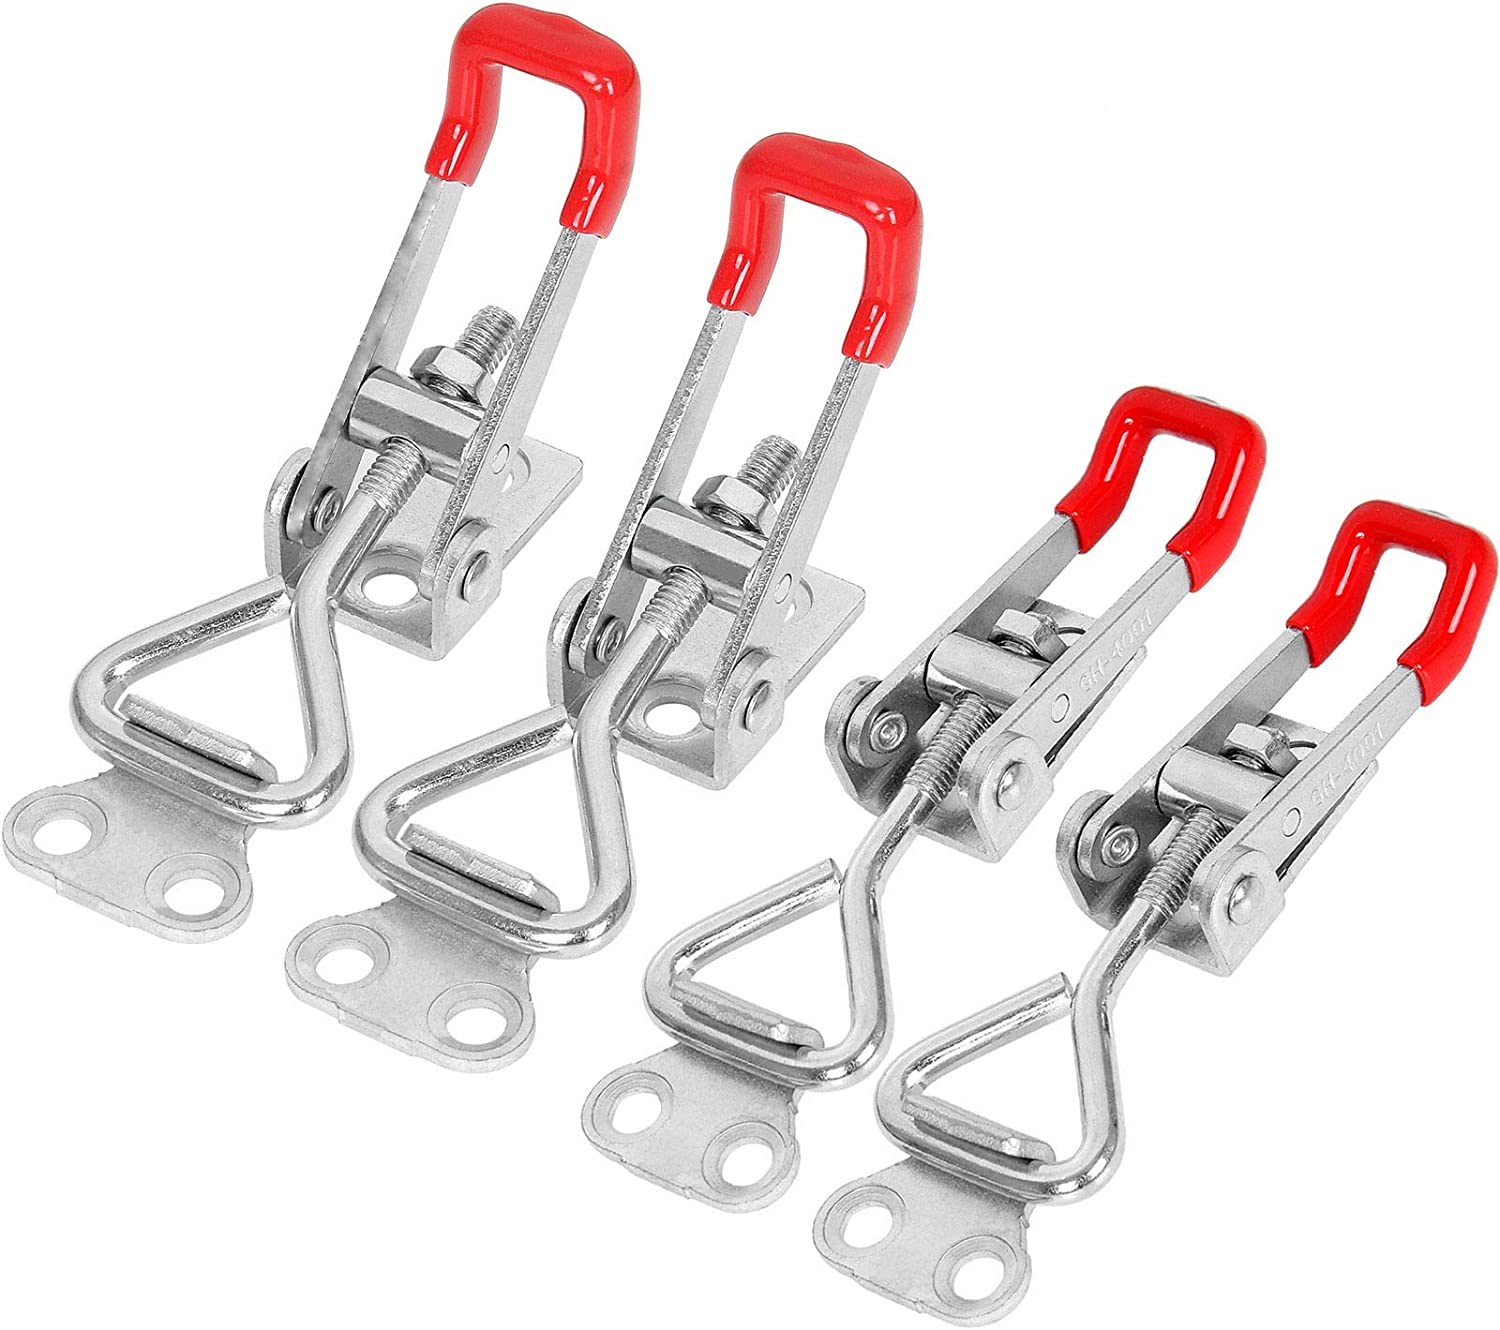 Jigs AConnet 16 Pcs Adjustable Toggle Clamp 4001 Style Quick Release Toggle Latch Clamp Antiskid Red Hasp Clamp Hand Tool 360Lbs Holding Capacity Quick Release Tool for Door Lid Trunk